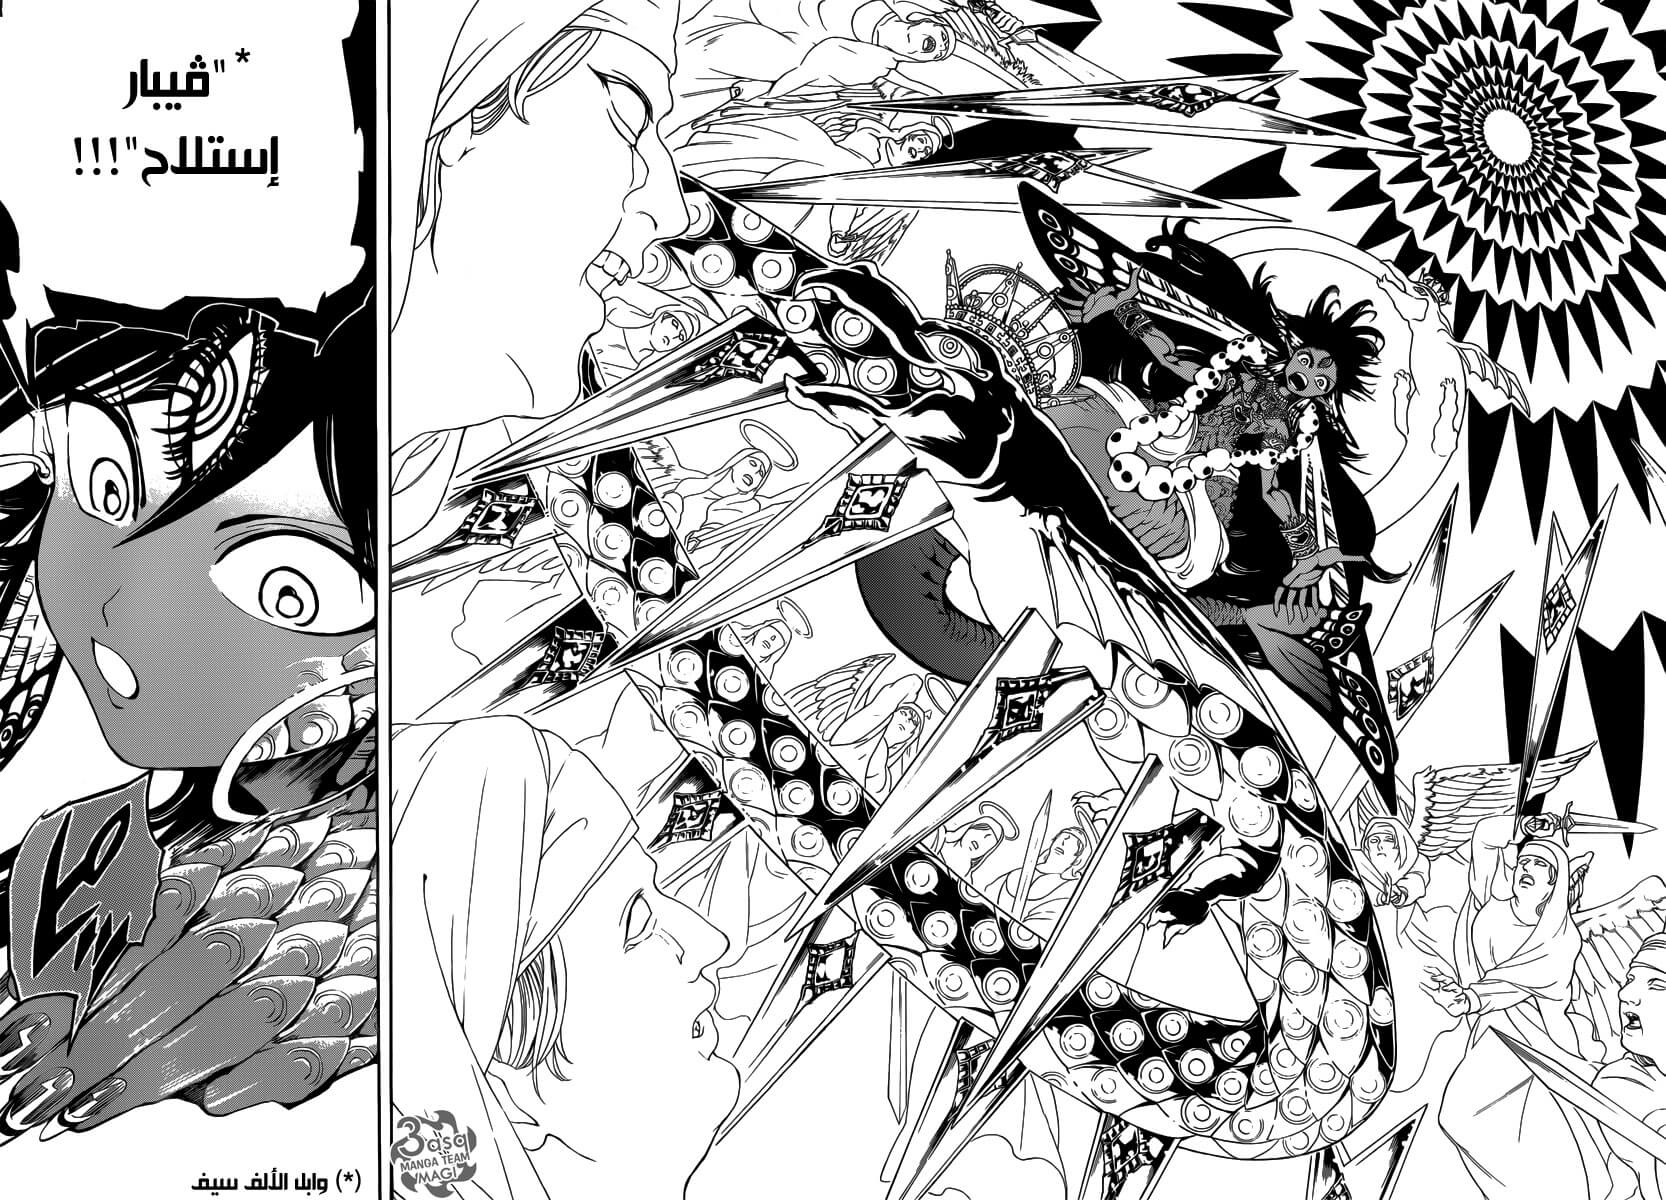 Magi: The Labyrinth of Magic 322